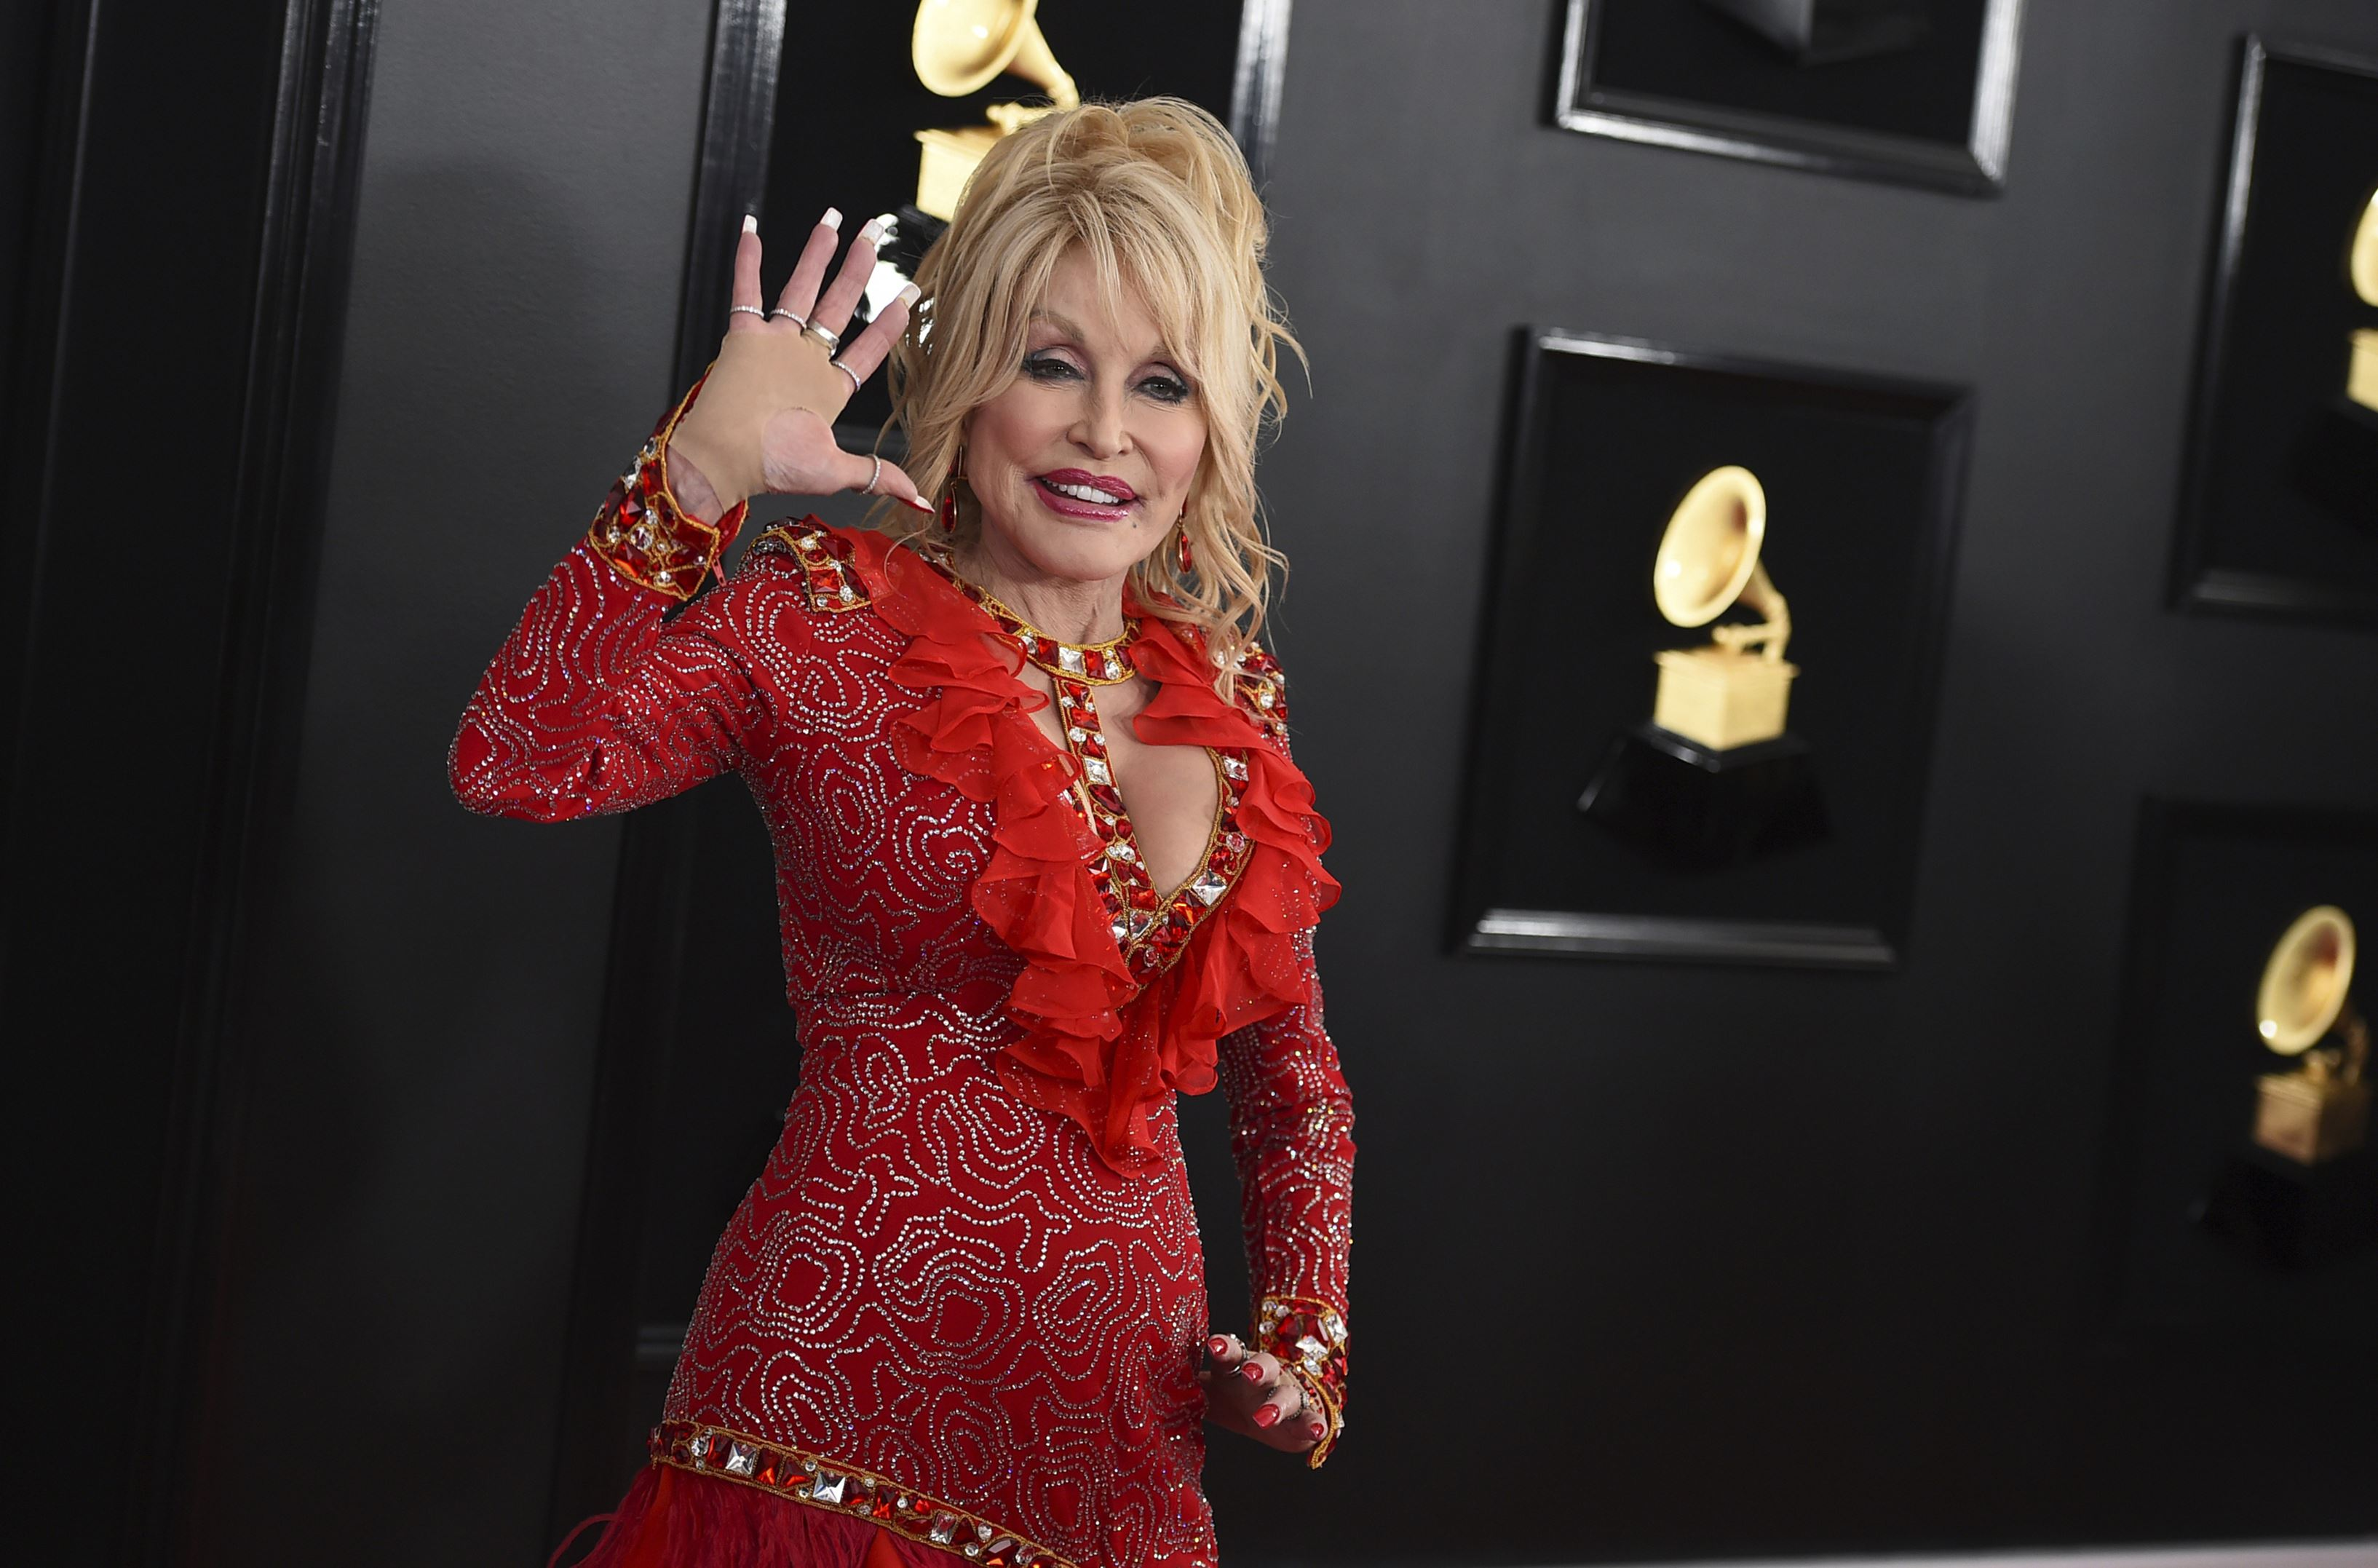 State Considers Immortalizing Dolly Parton